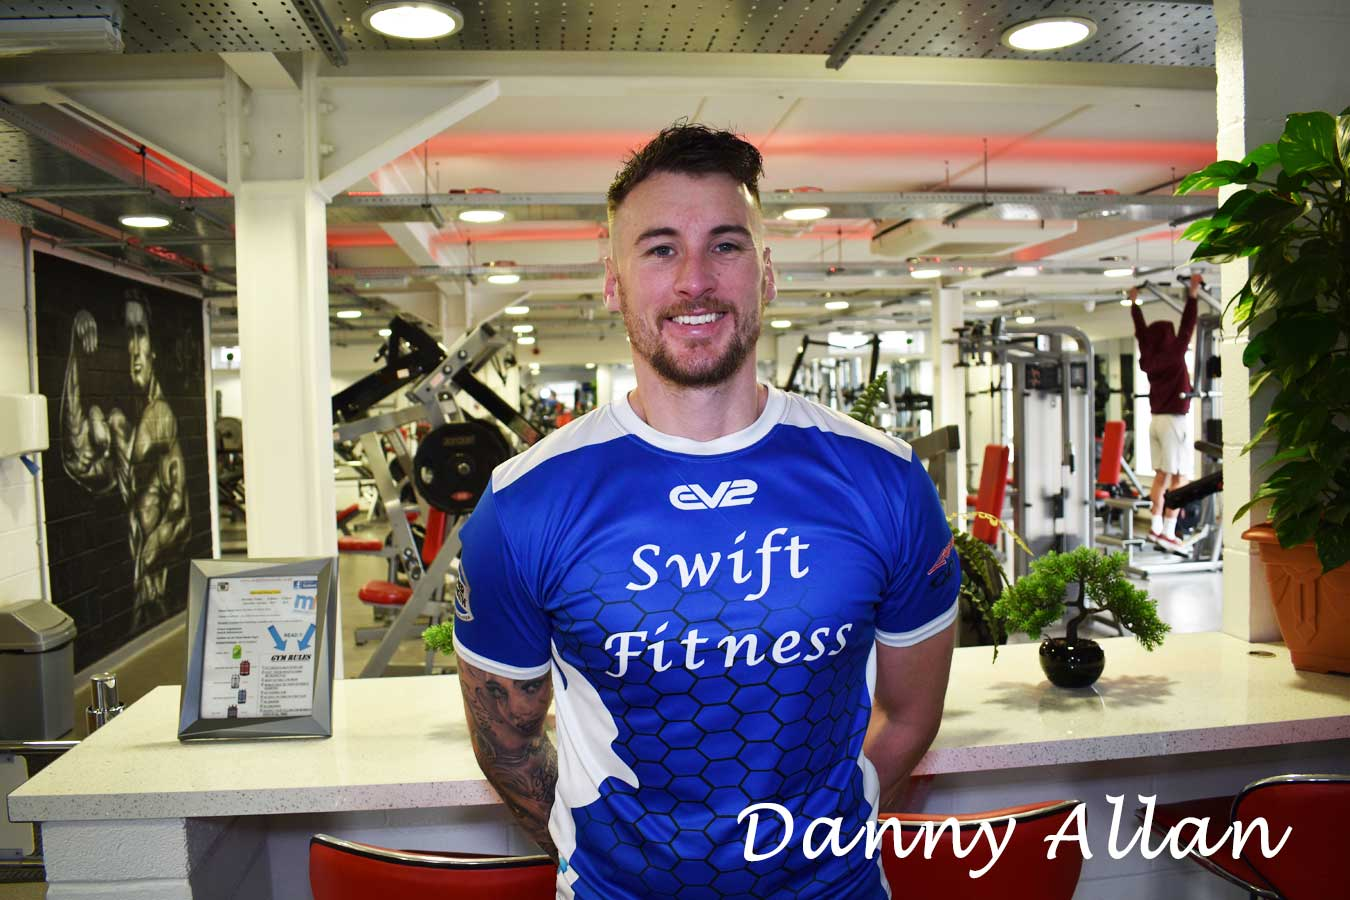 swift fitness personal trainer